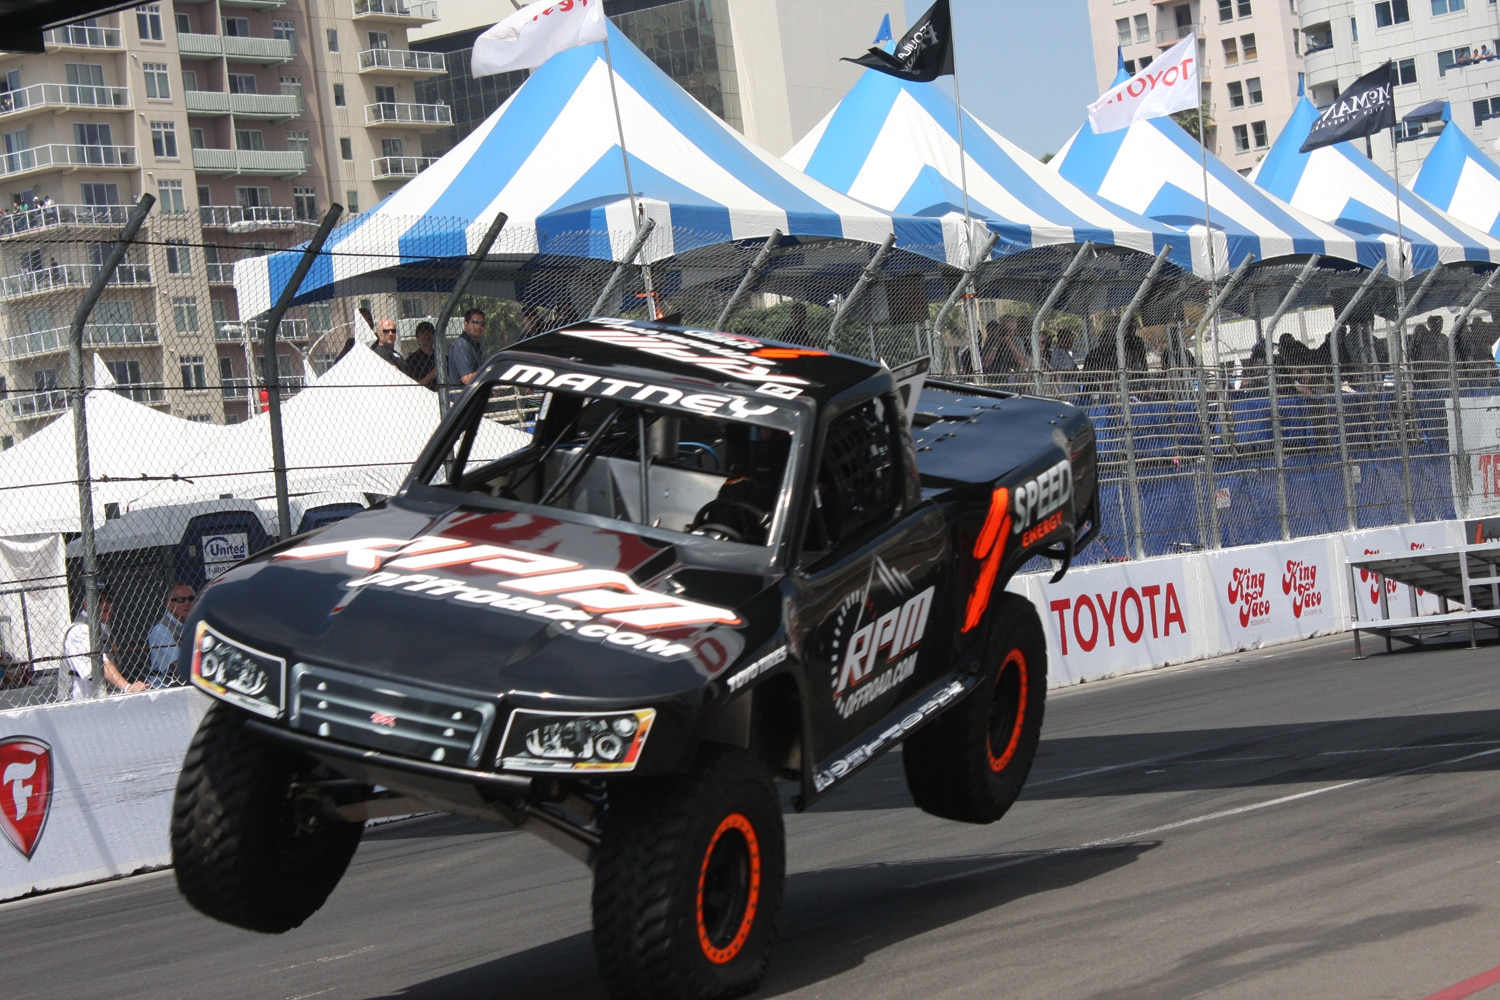 1304OR 42+Robby Gordon SST Stadium Super Trucks 2013 Long Beach Grand Prix